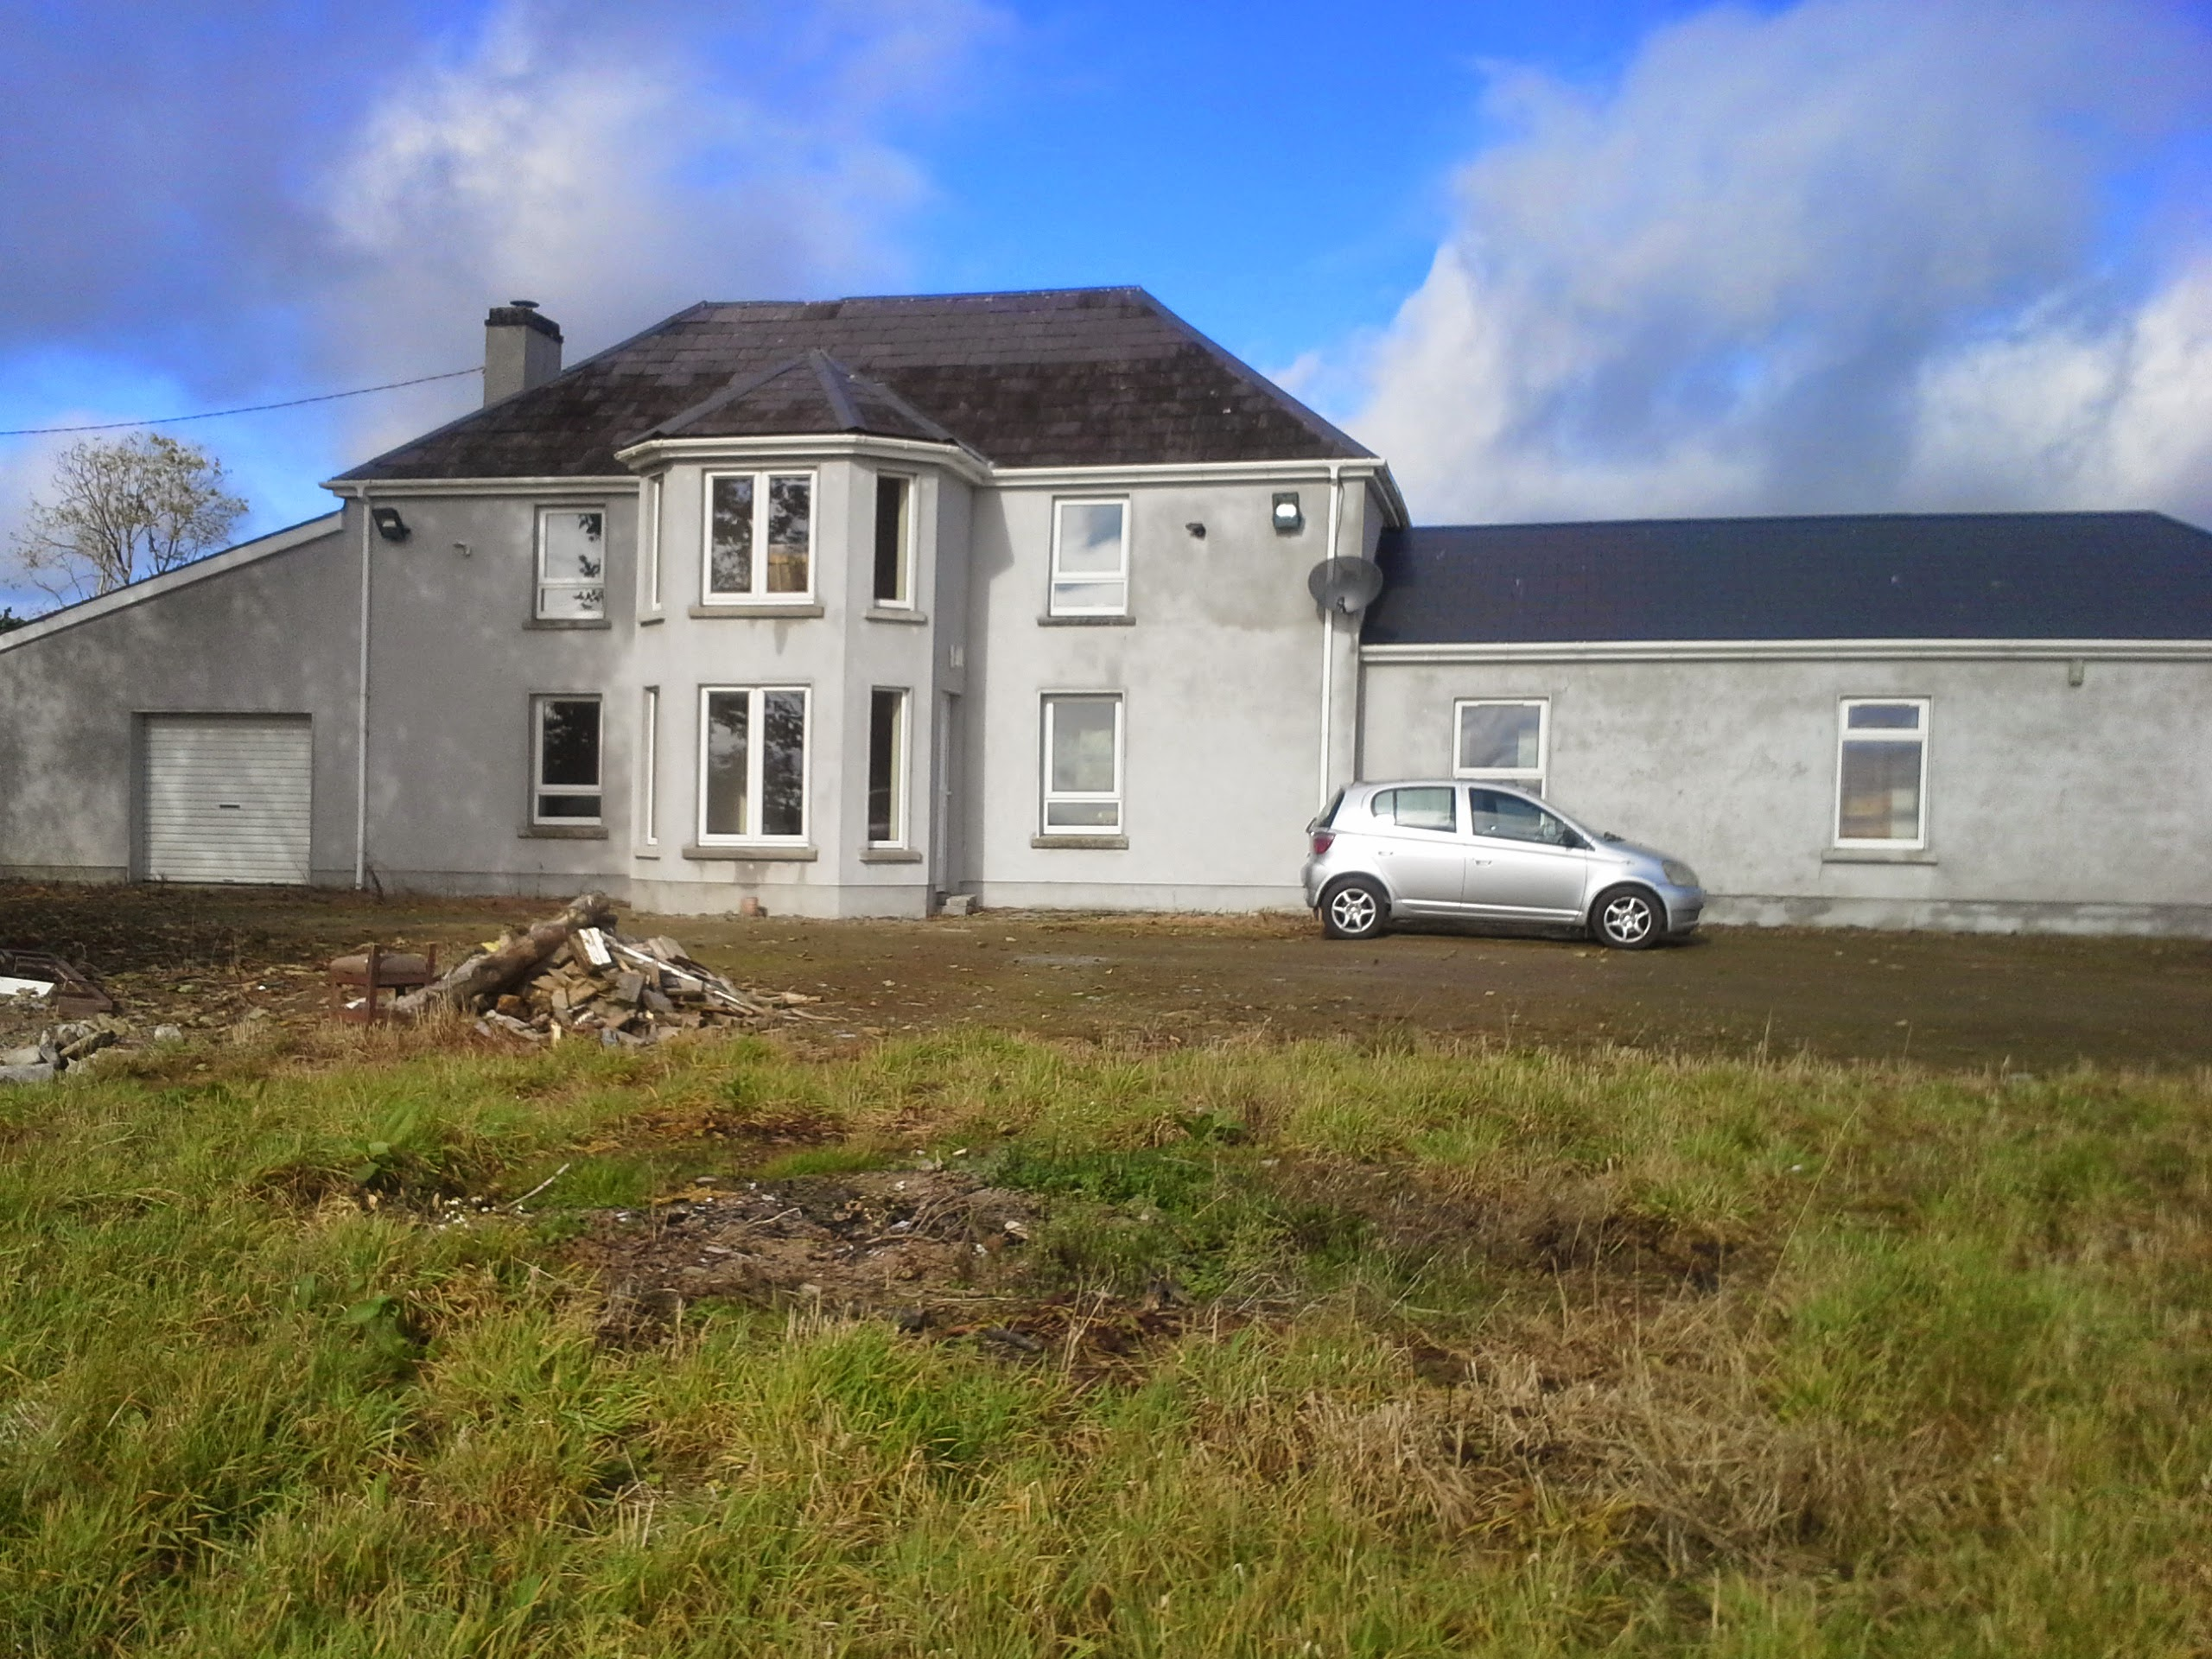 Image of a house before exterior painting